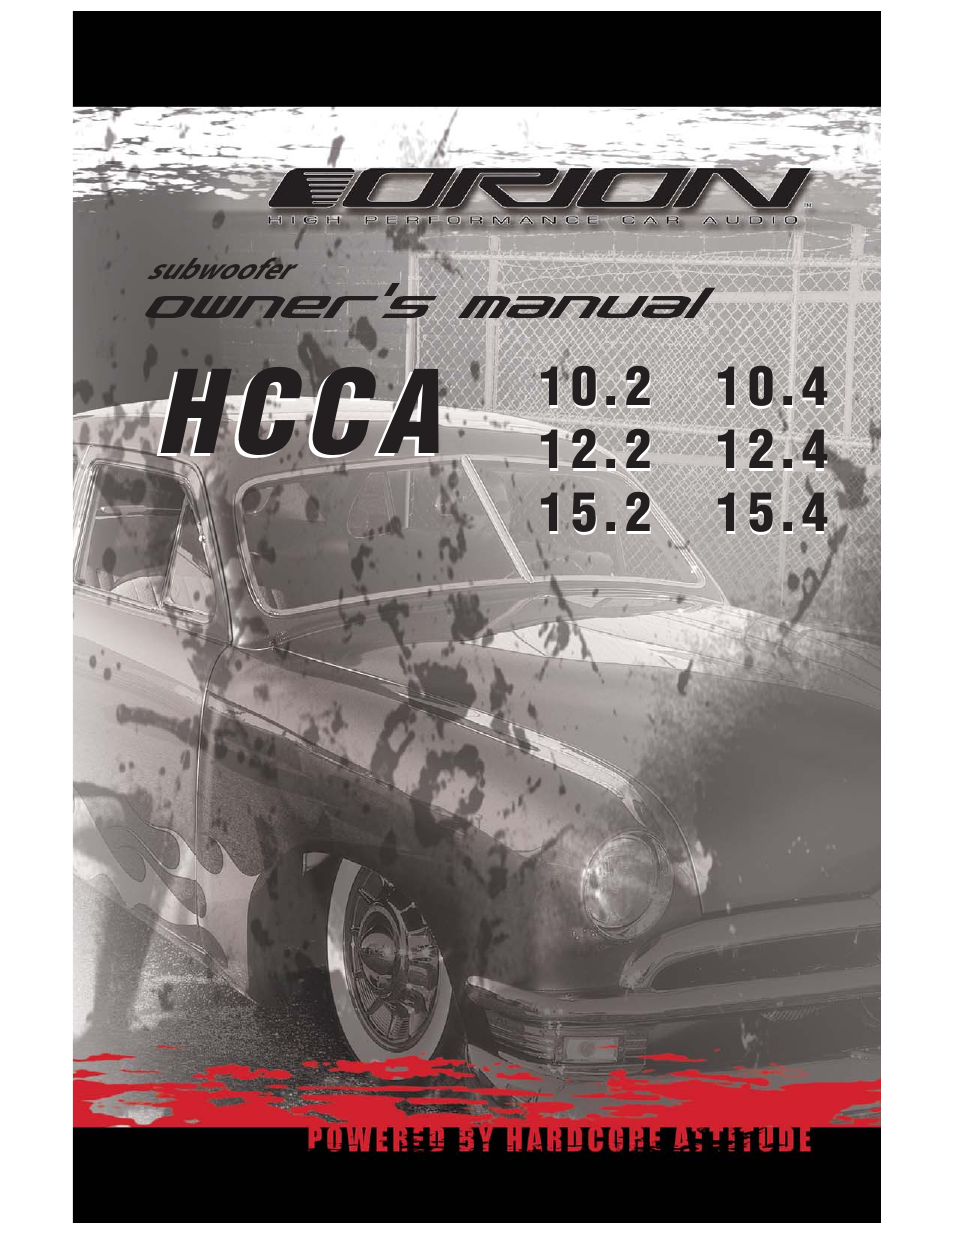 Orion Car Audio HCCA 15.2 User Manual | 23 pages | Also for: HCCA 12.4, HCCA  10.2, HCCA 12.2